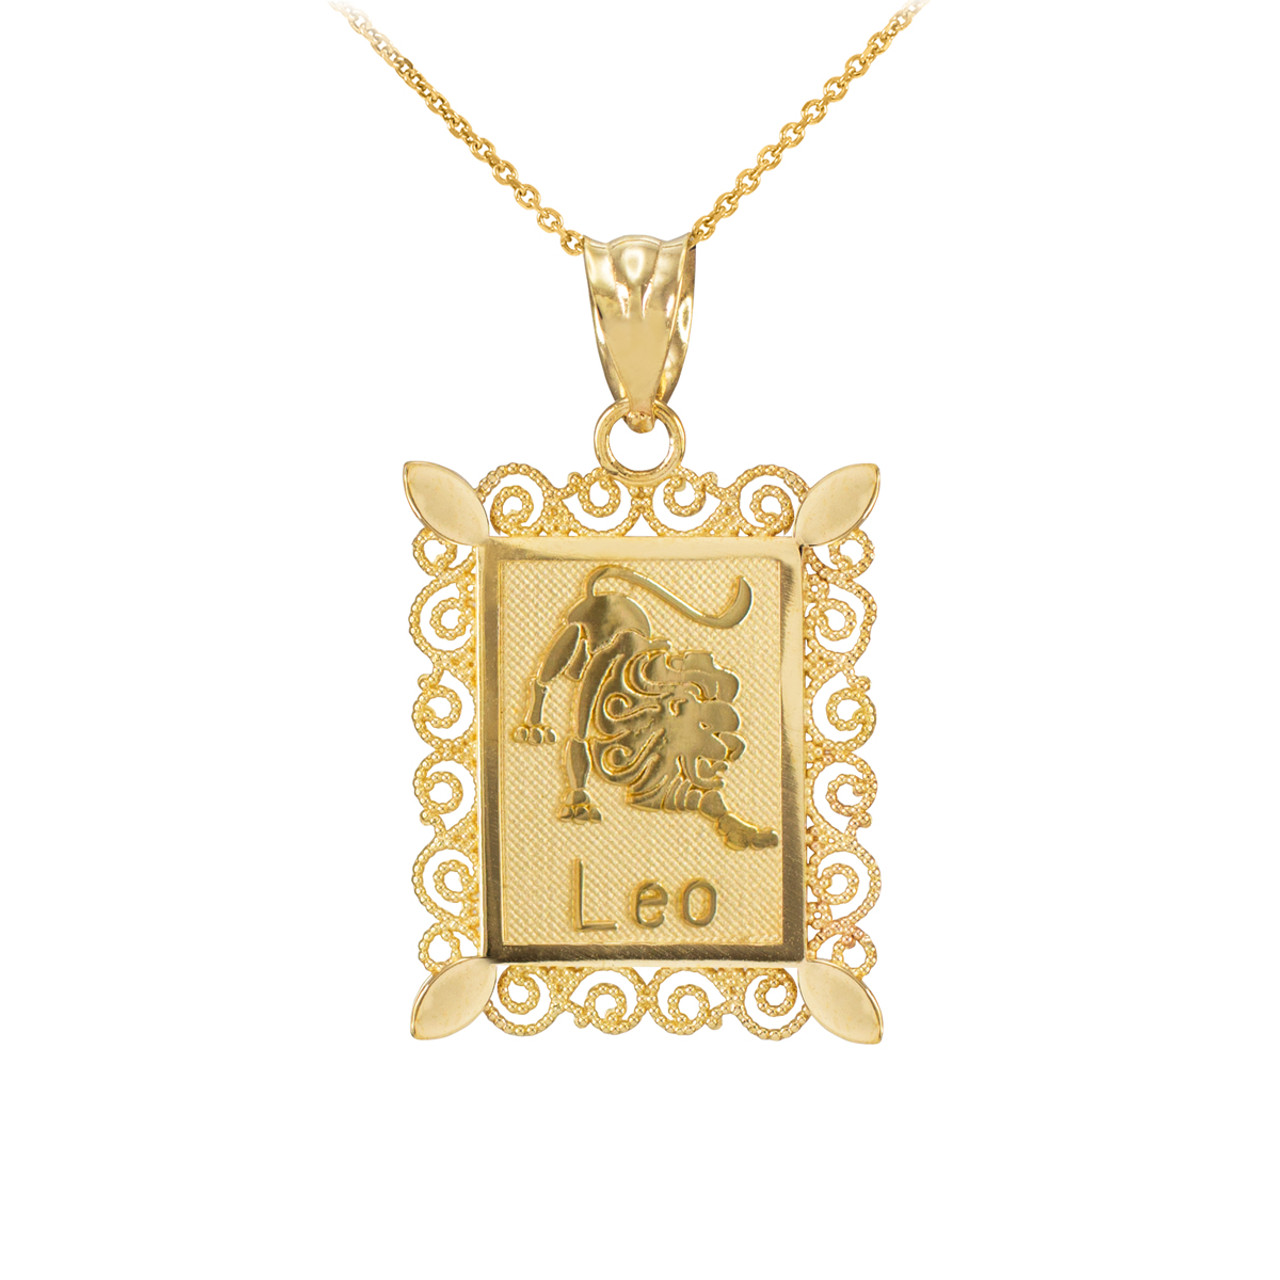 Polished Gold Rectangular Leo Zodiac Sign Pendant